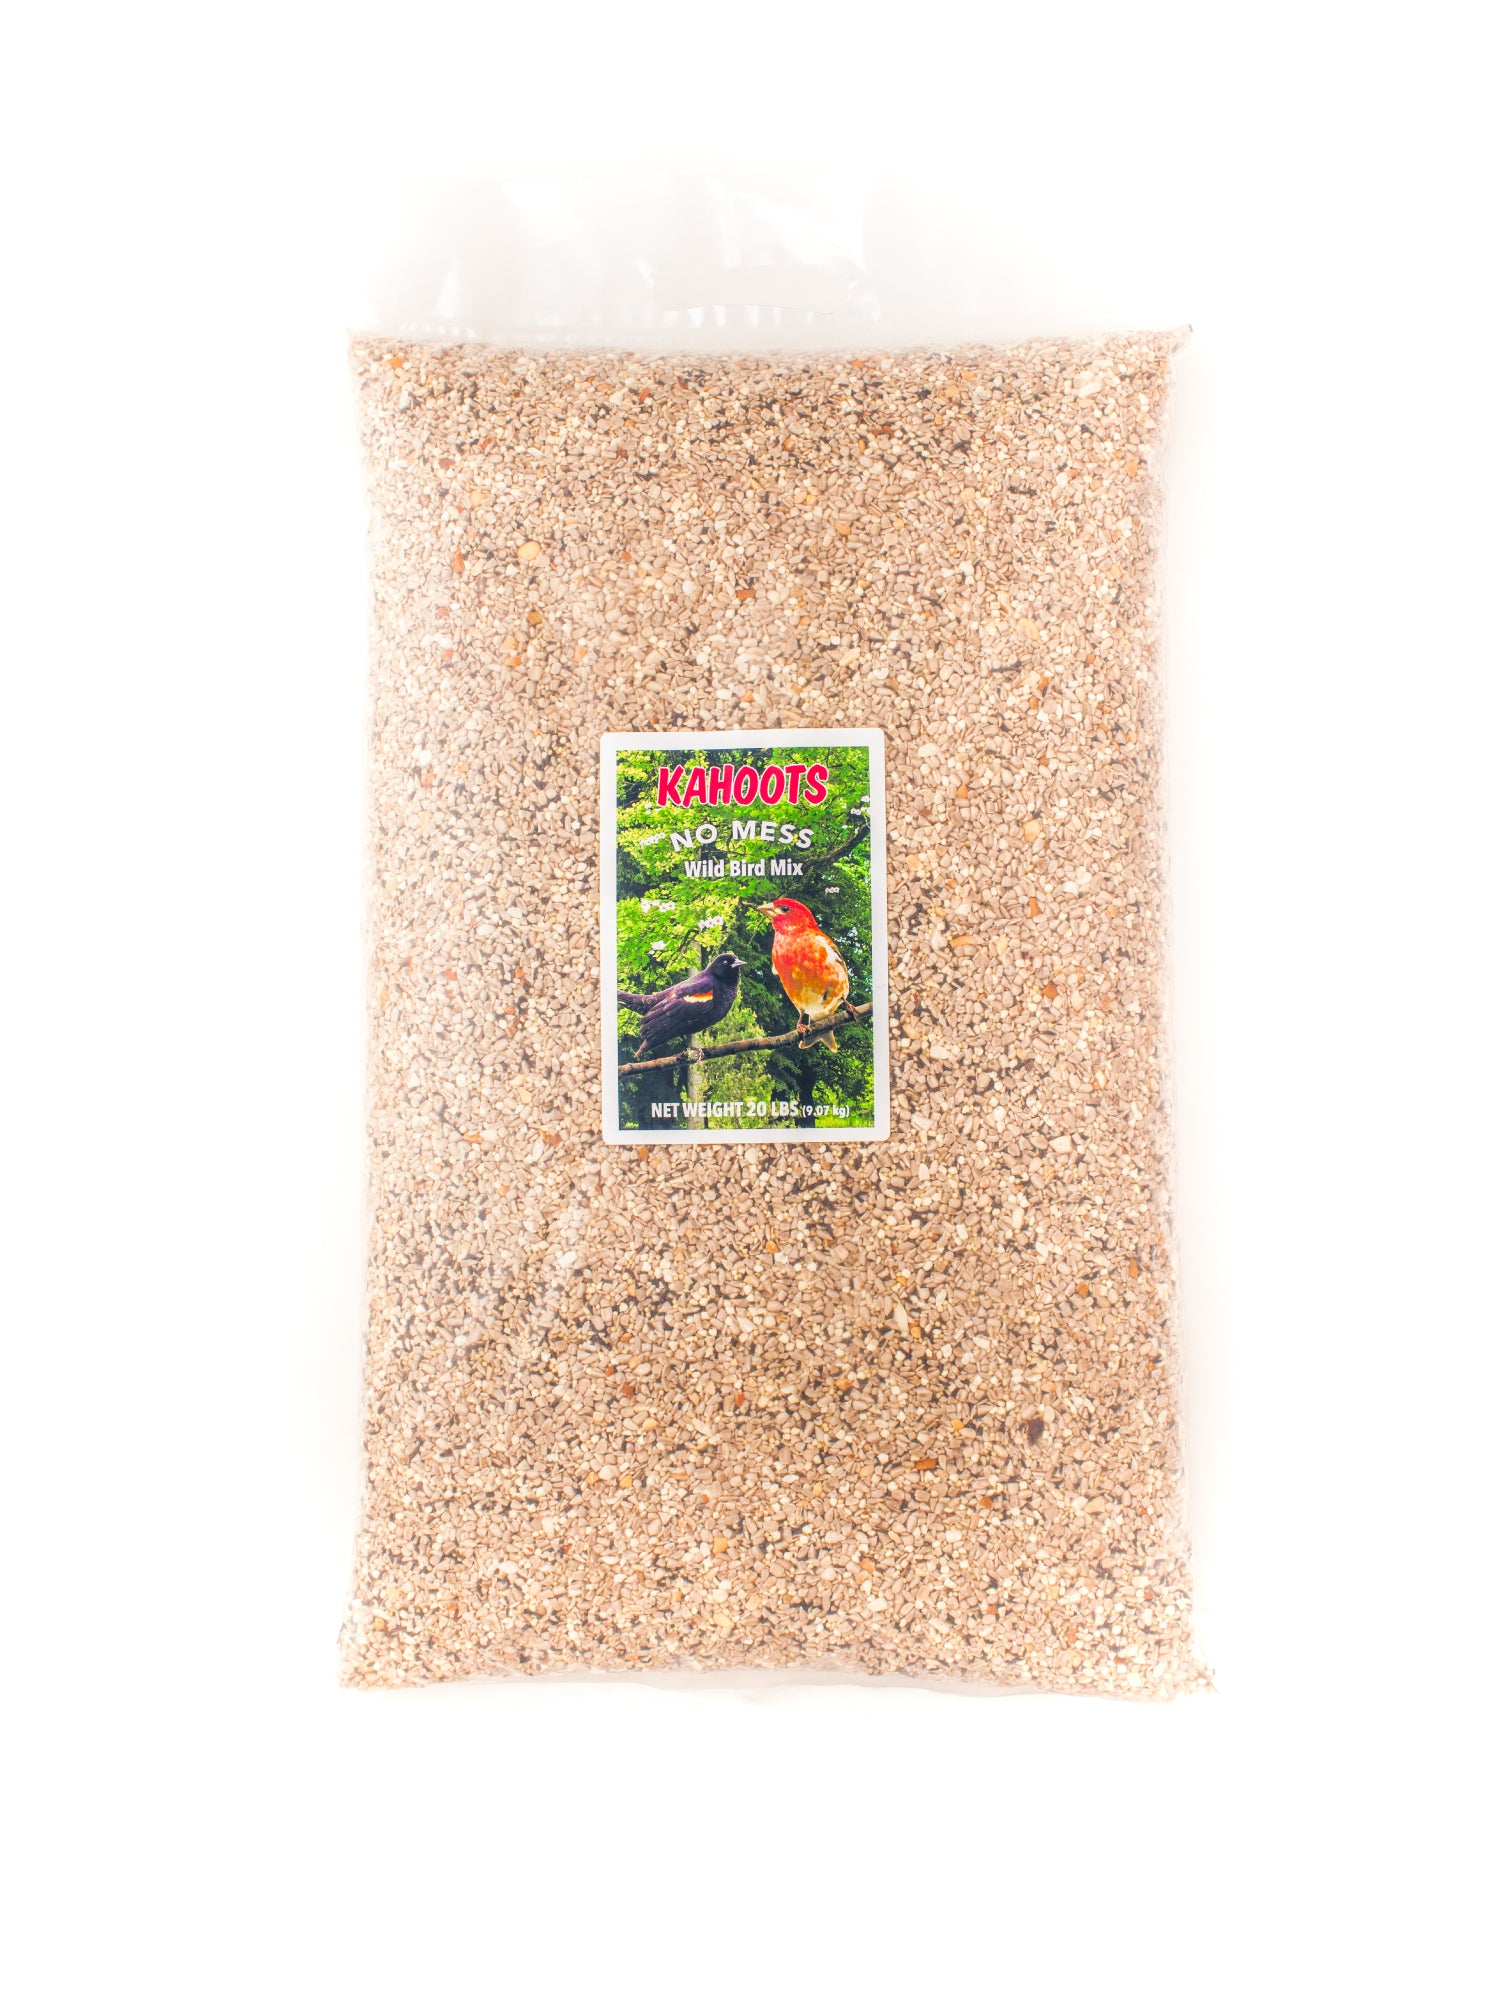 No mess wild bird seed. Mixed seeds without shells. 20lb